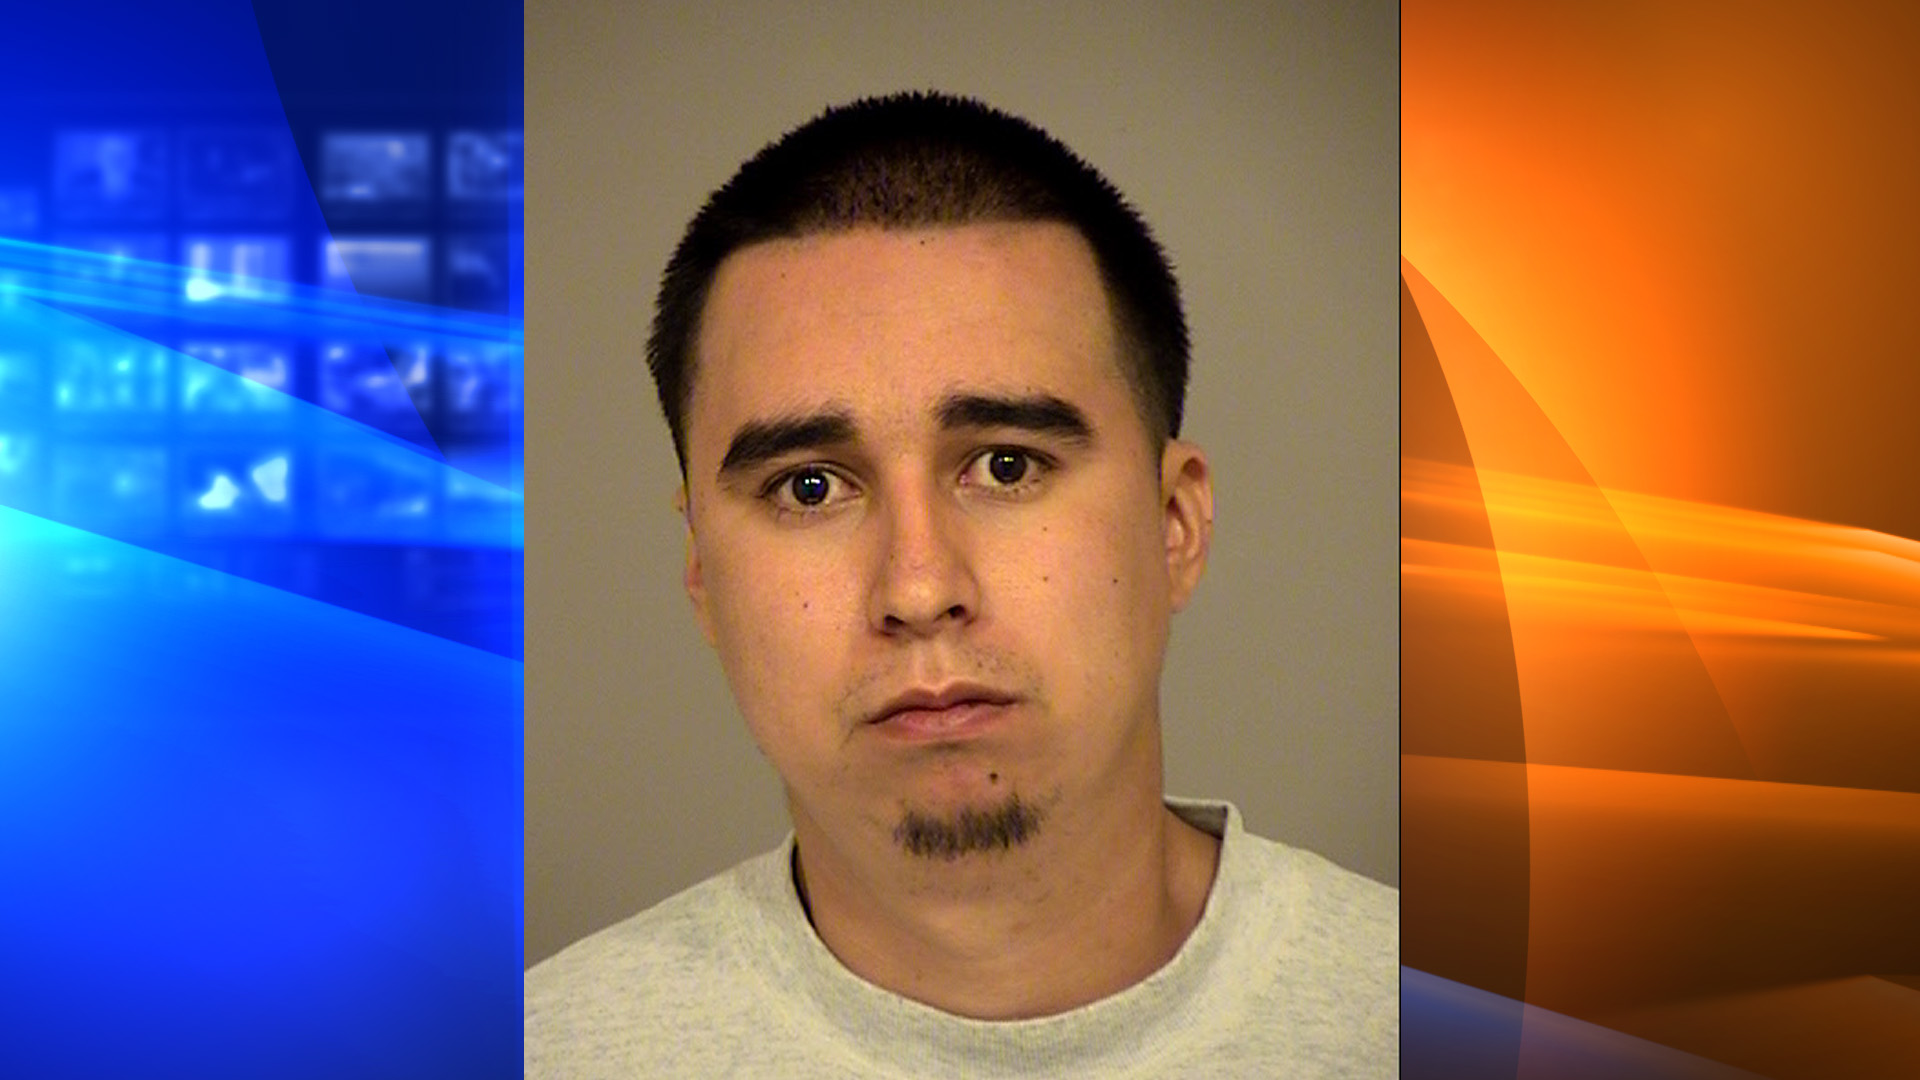 Eric Appel is seen in this booking photo from the Ventura County Sheriff's Office.